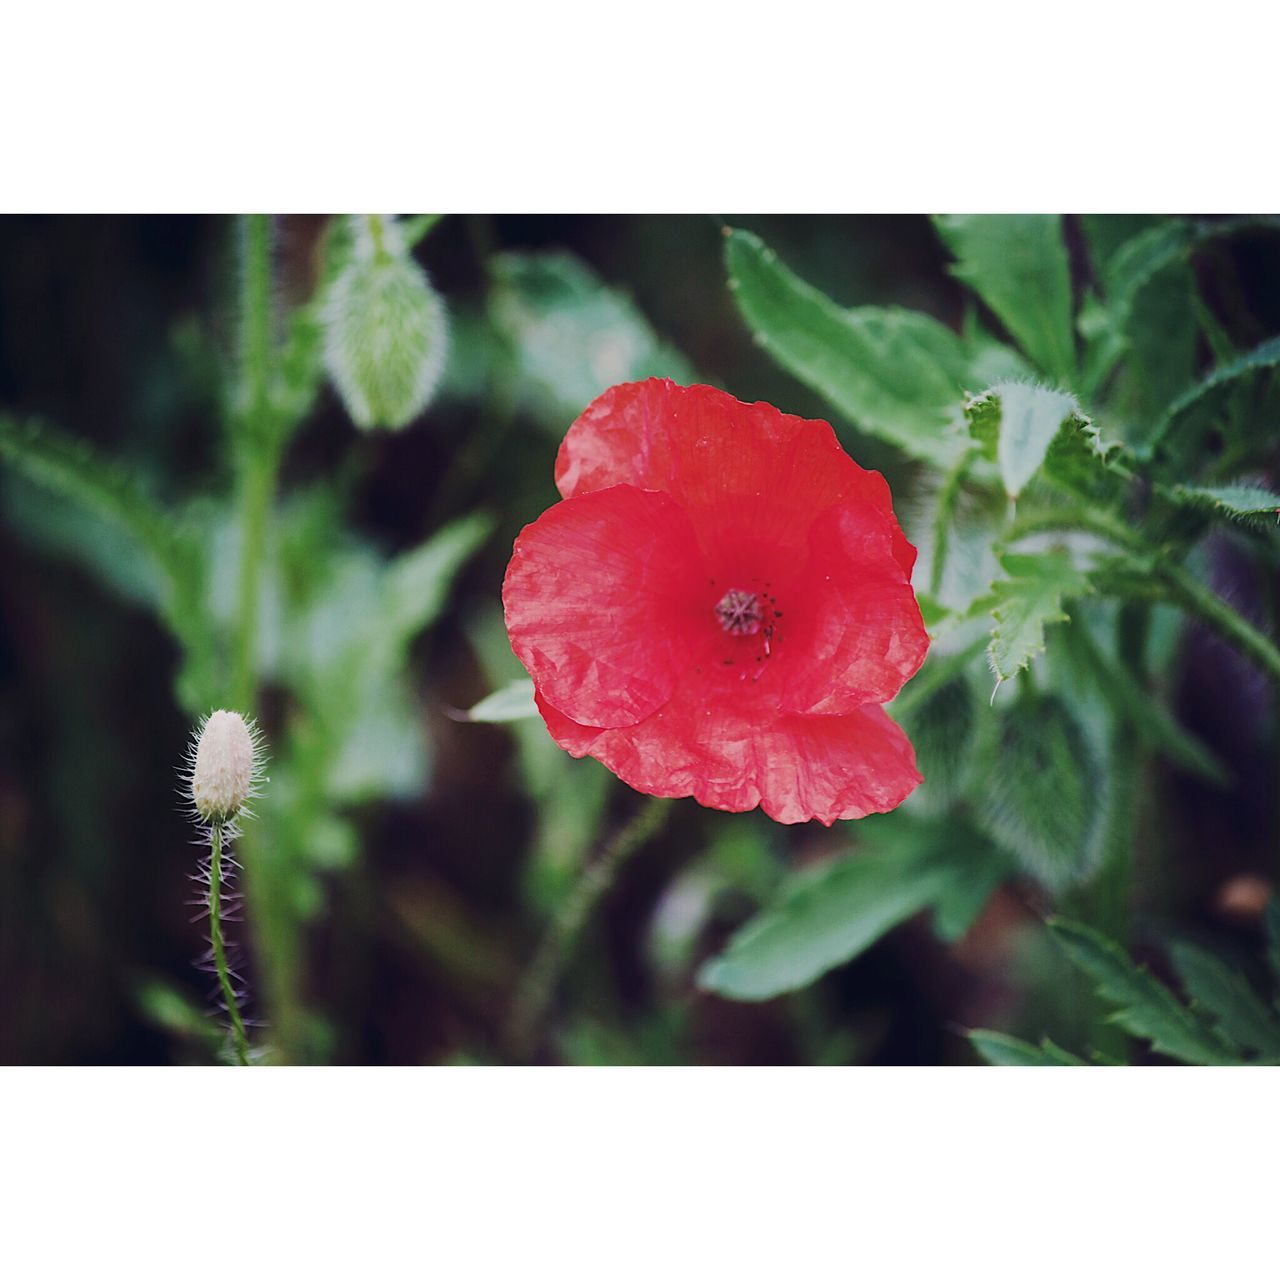 Flower Growth Plant Nature Petal Beauty In Nature Fragility Flower Head Close-up No People Outdoors Day Freshness Red Blooming Poppy Flowers Poppy The Great Outdoors - 2017 EyeEm Awards